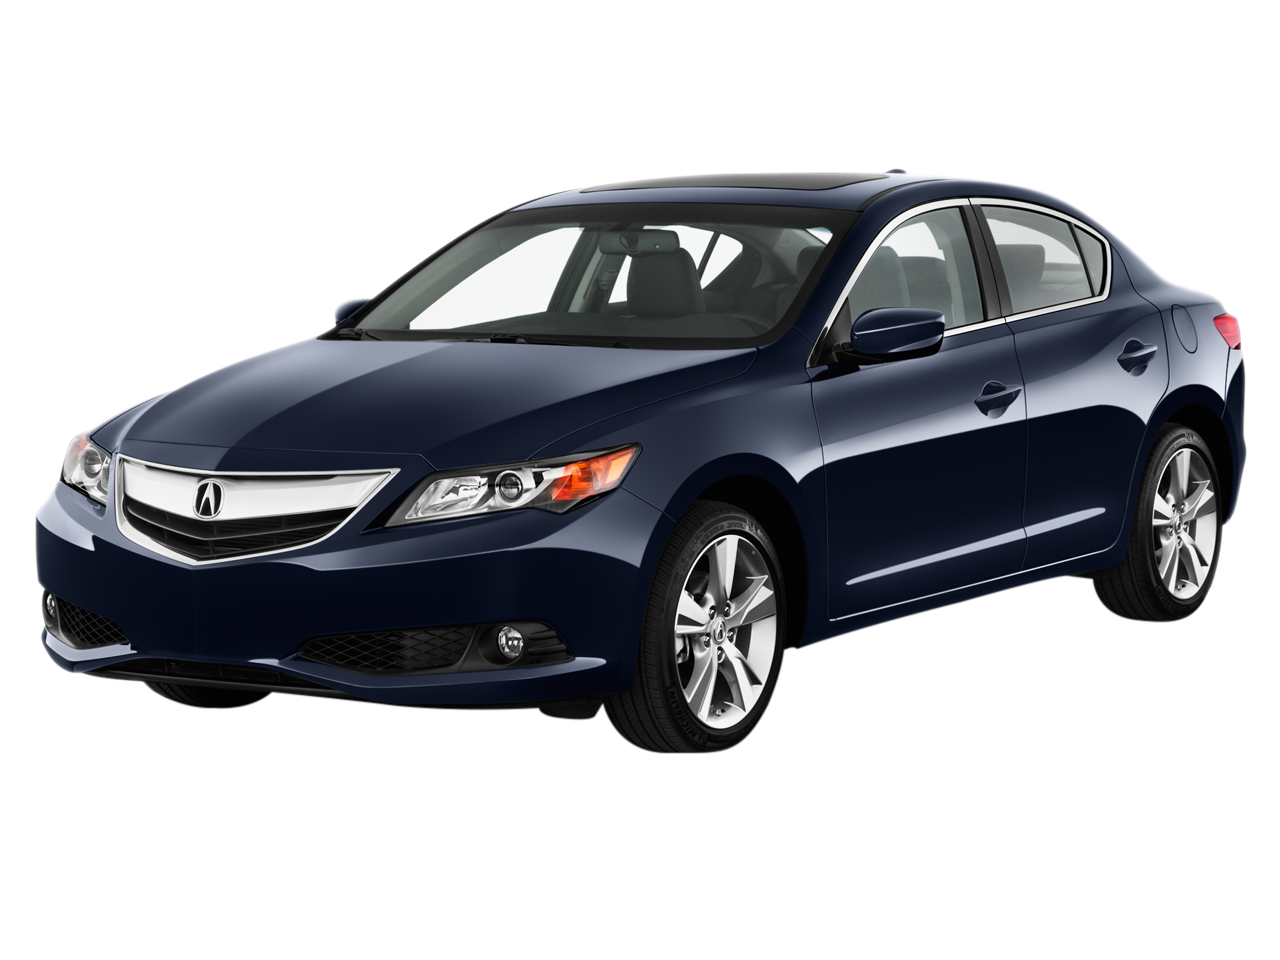 The Acura Ilx Is A Compact Luxury Sedan For Honda S Luxury Brand